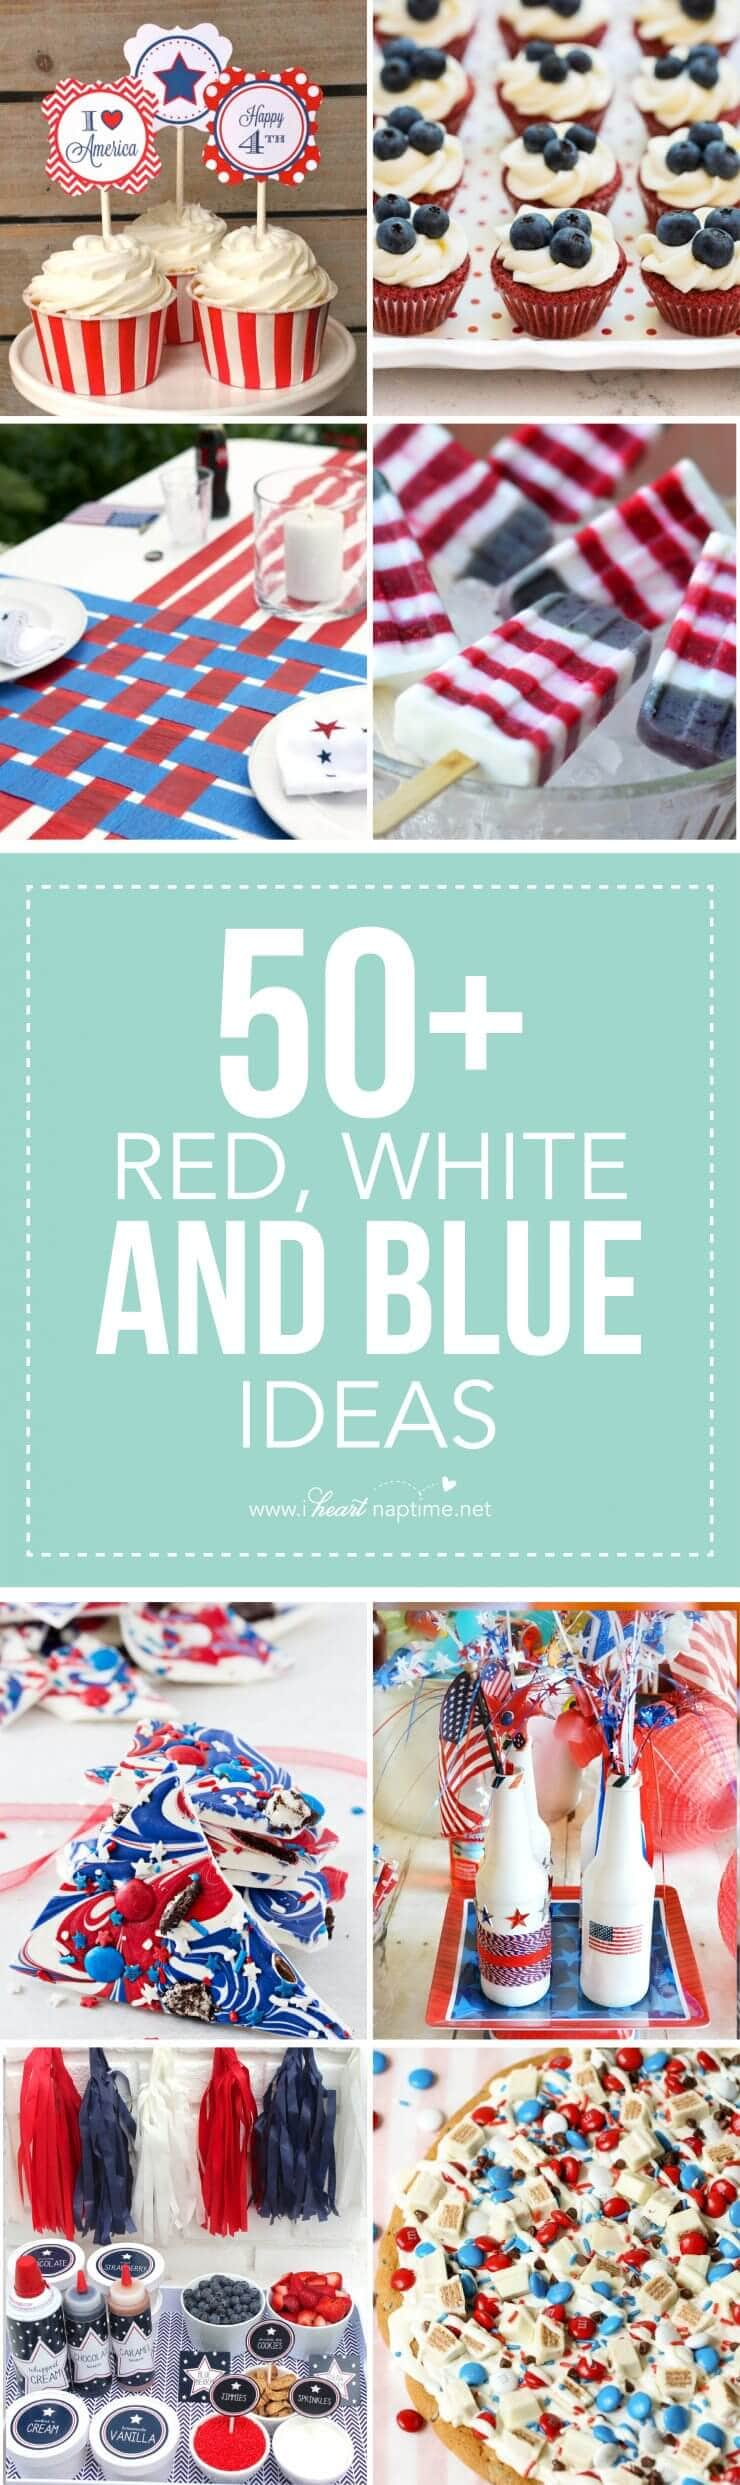 50 Festive Red, White and Blue / Memorial Day and 4th of July BBQ Ideas...creative ways to kick-off summer and celebrate our freedom while remembering our fallen heroes!